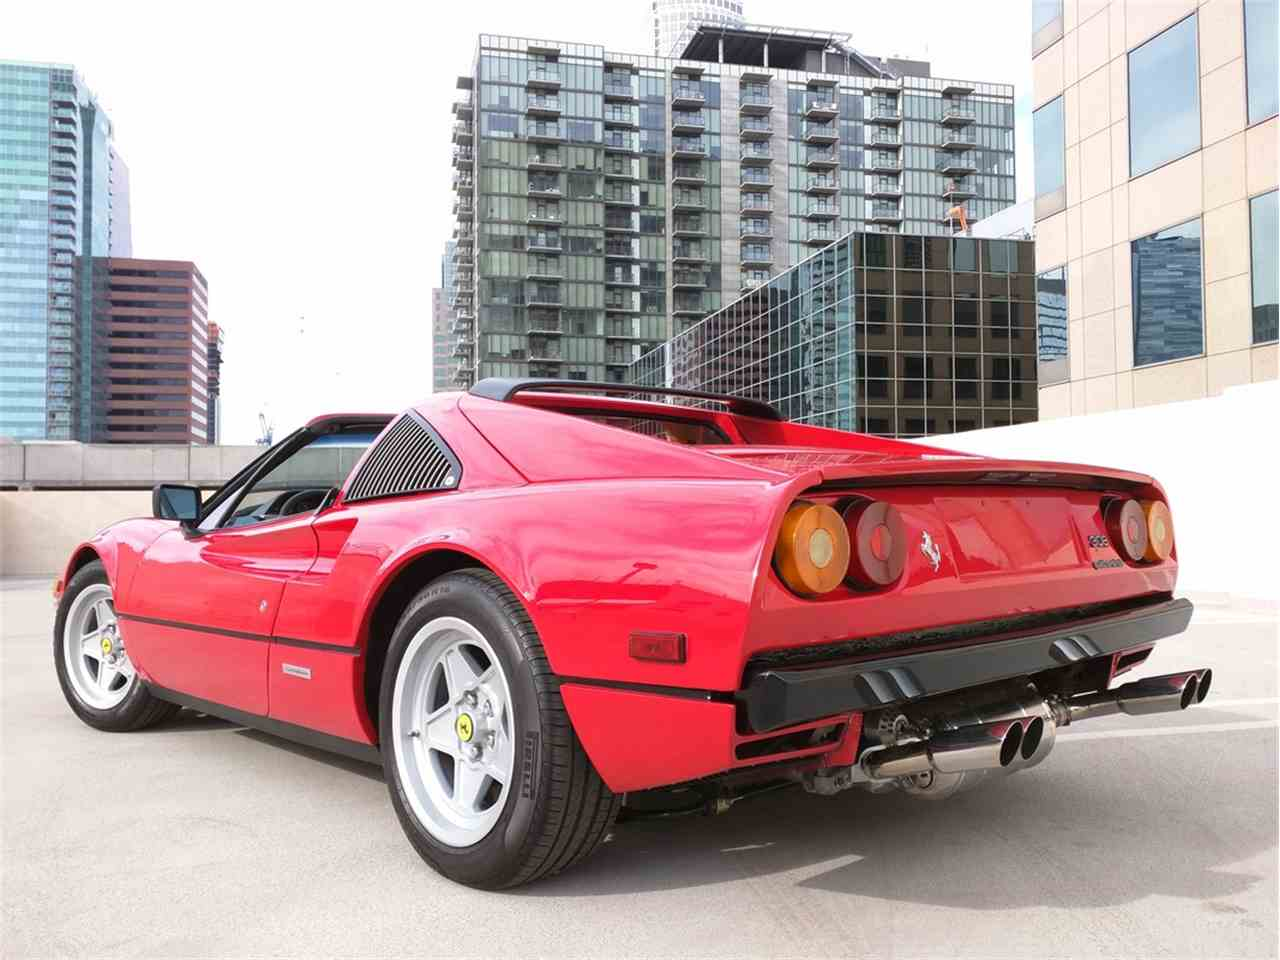 Large Picture of 1985 Ferrari 308 GTS located in California - $60,000.00 Offered by a Private Seller - G99N